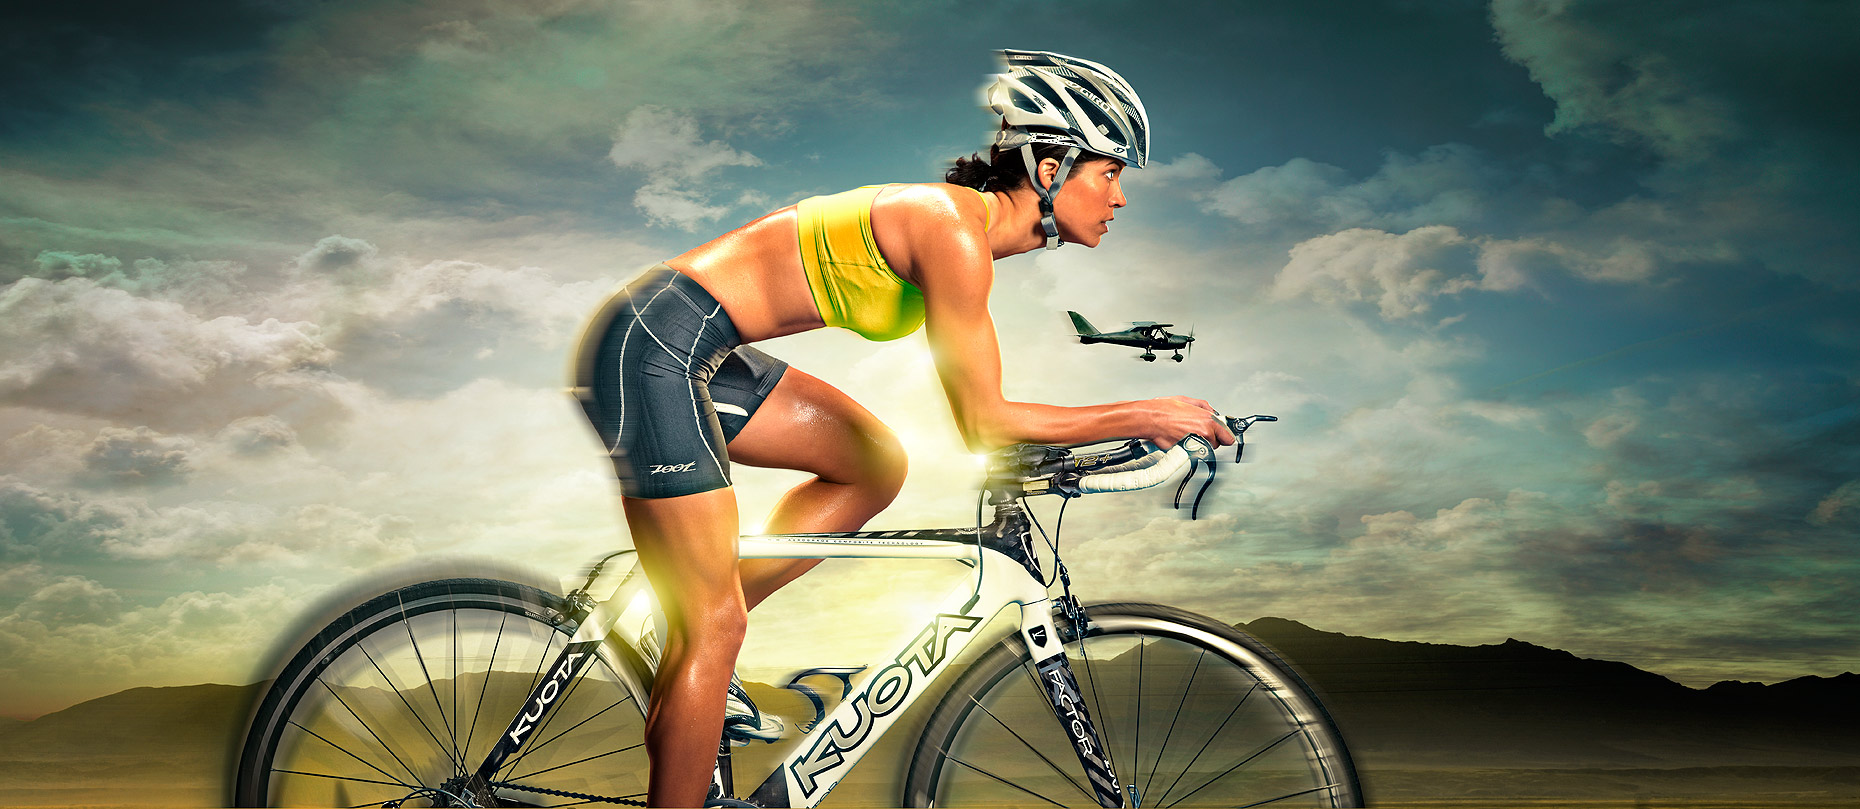 8-Website-Triathlete-for-web